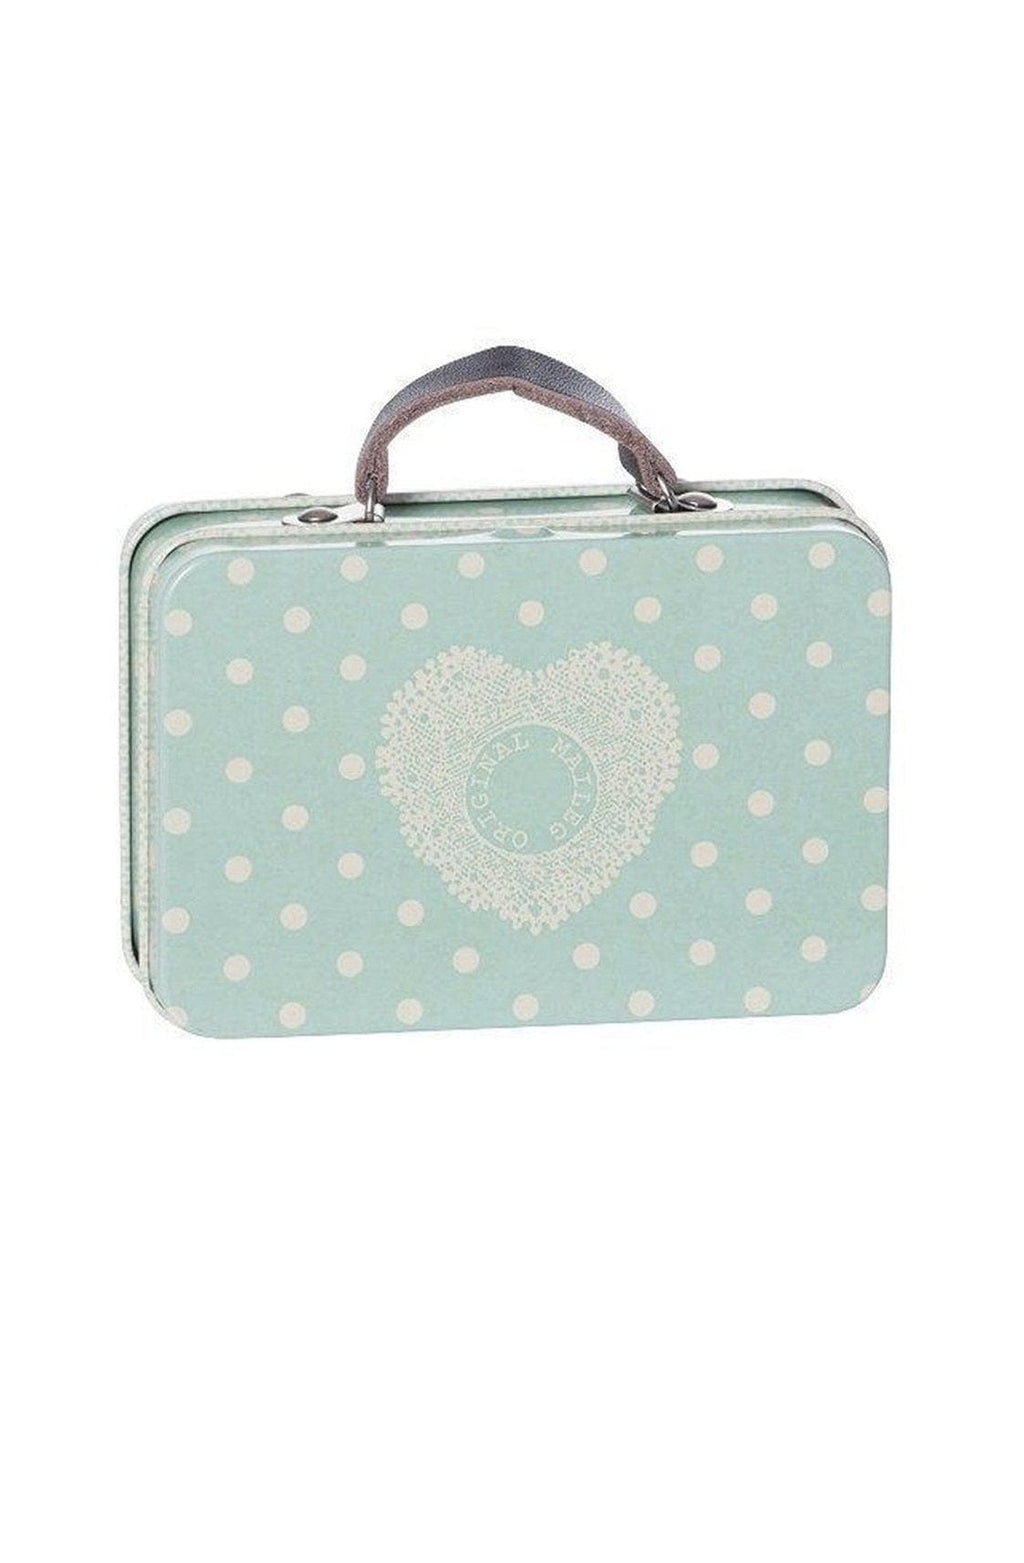 Maileg Metal Suitcase blue big dots